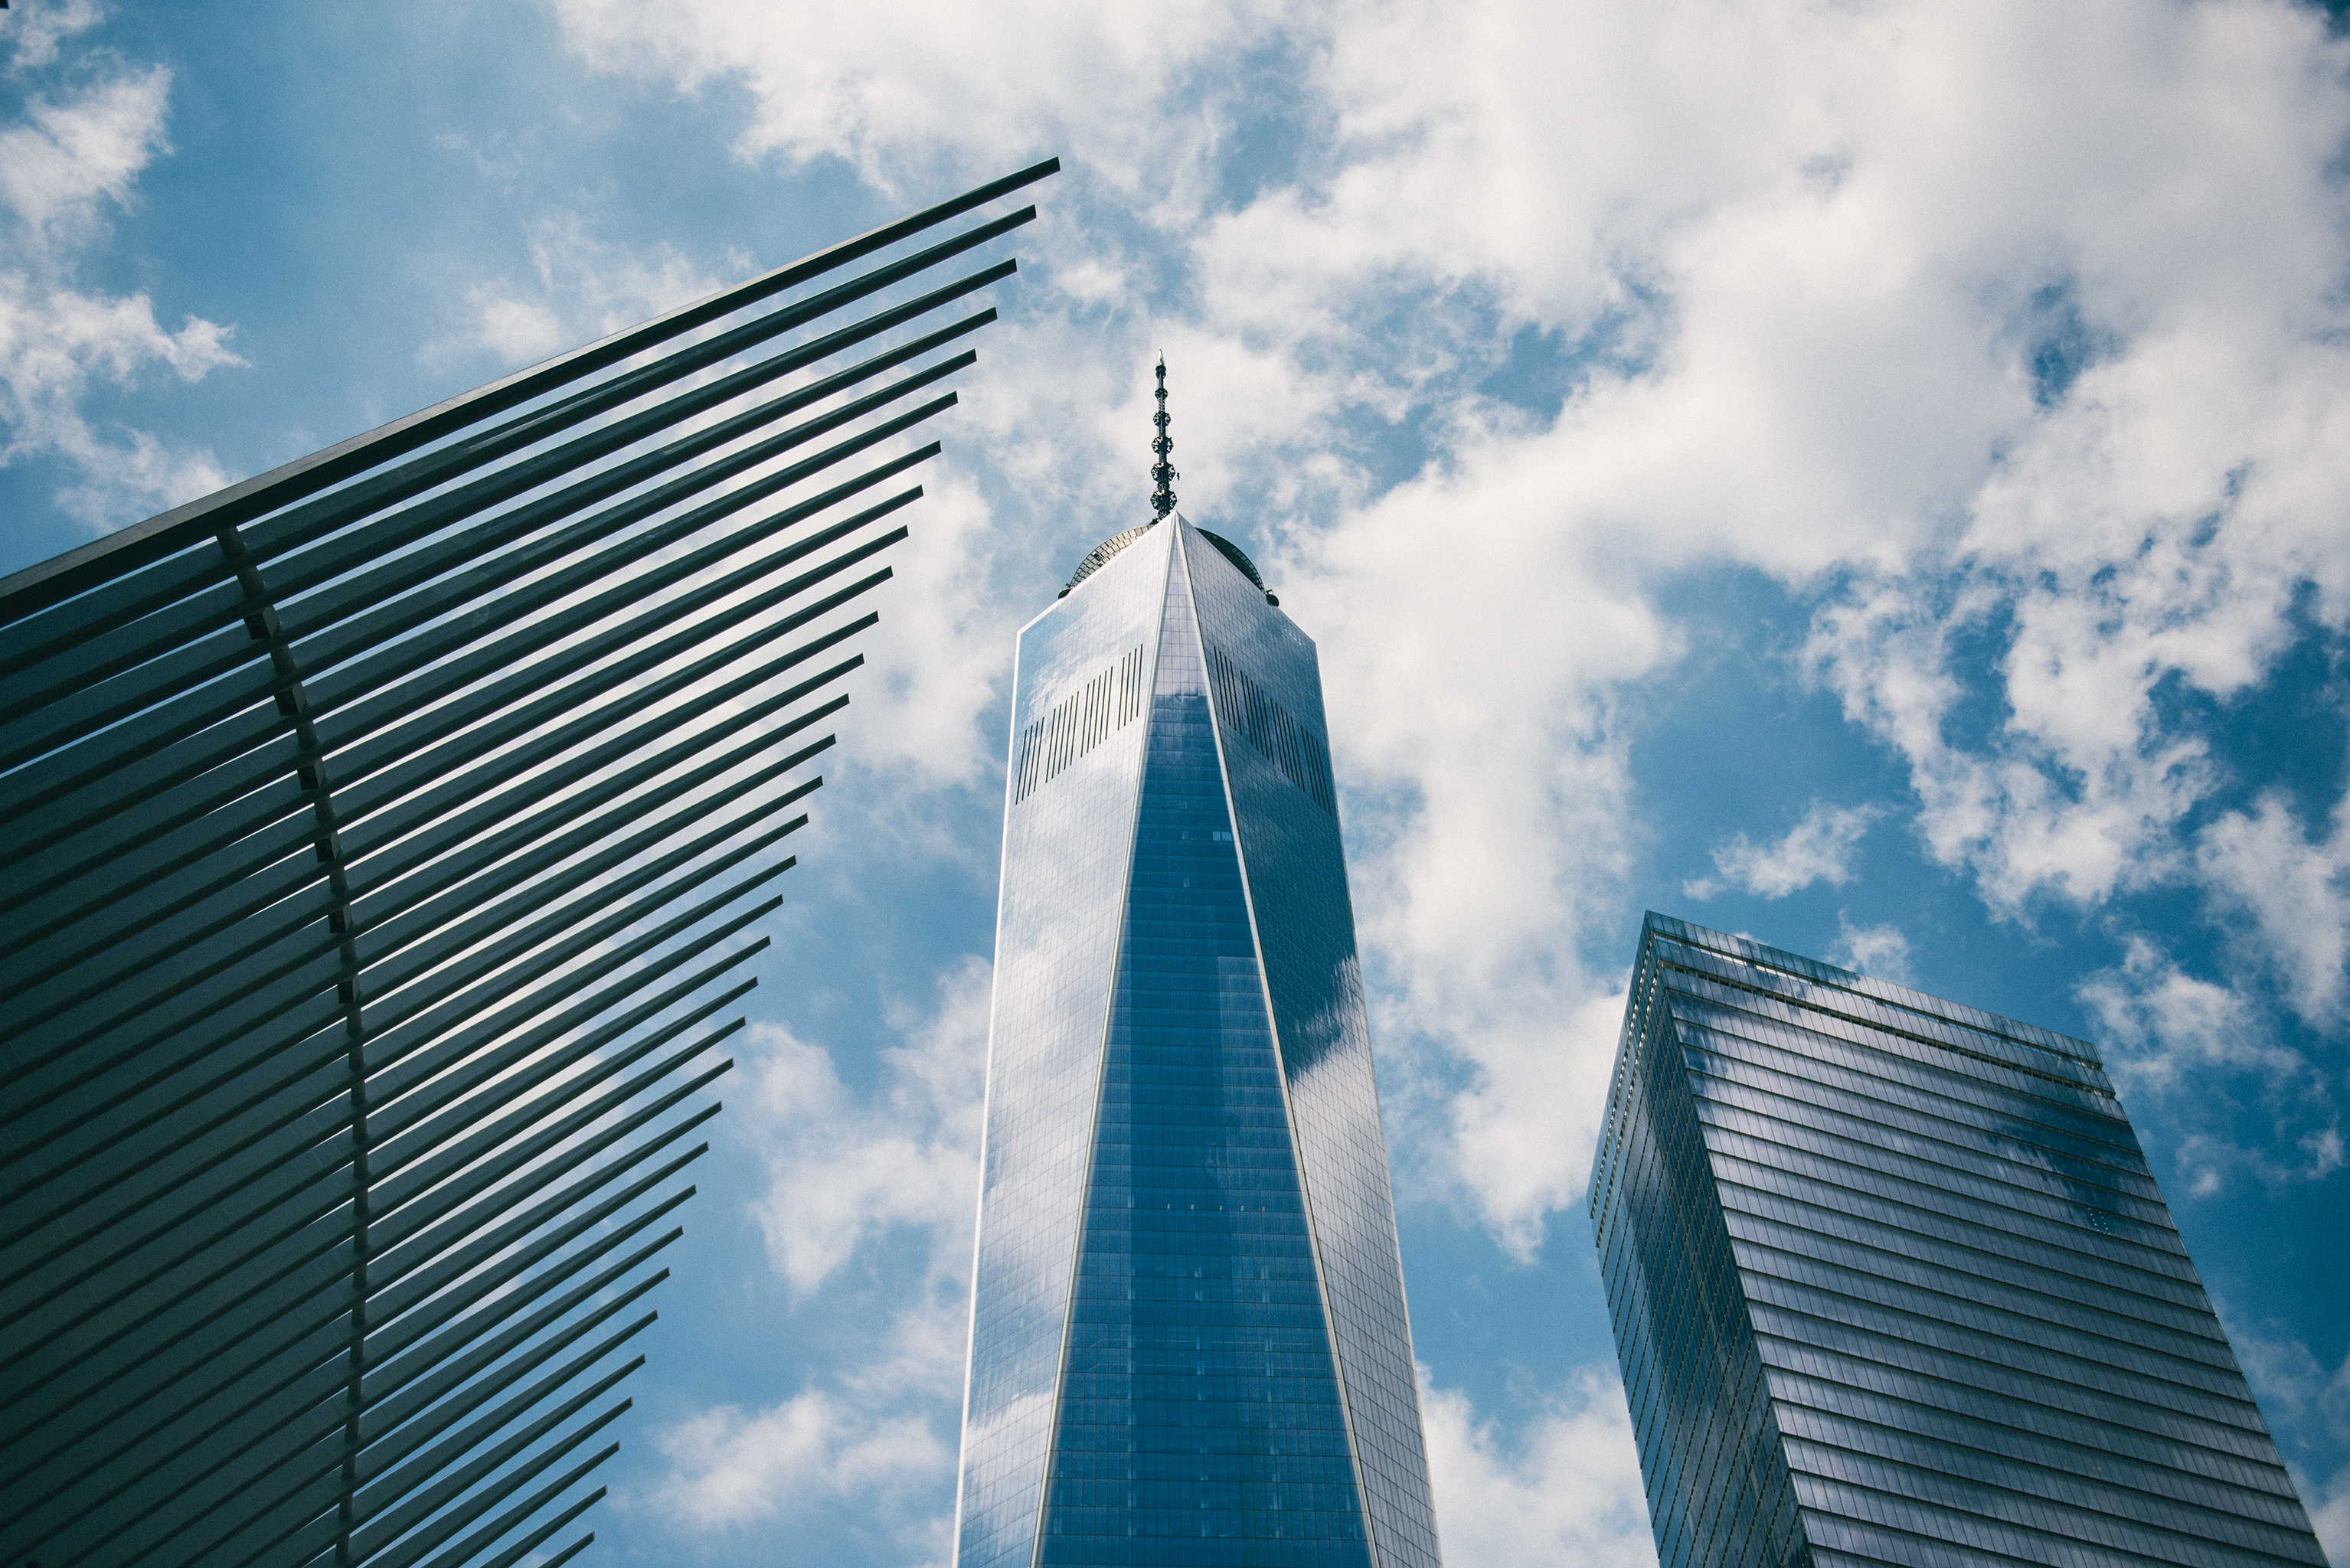 Condé Nast headquarters, One World Trade